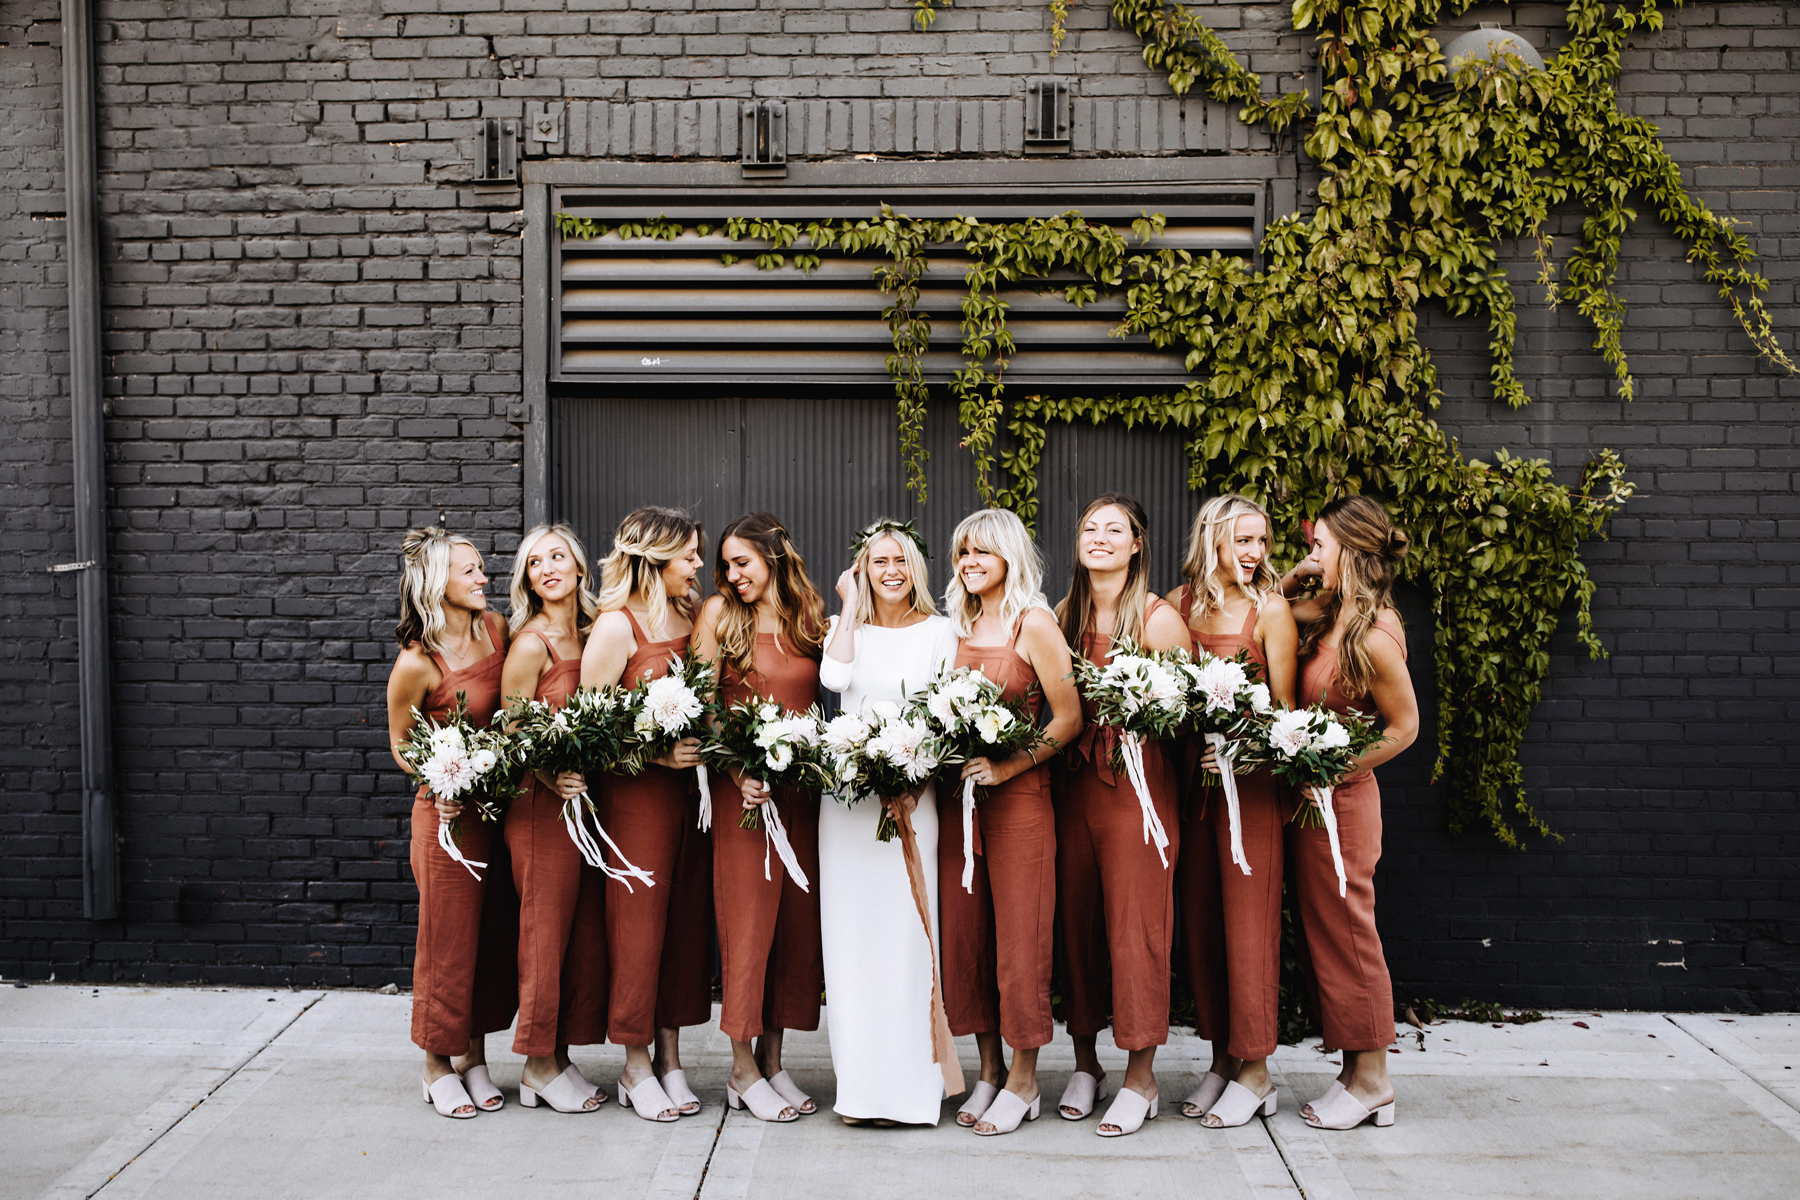 20 Wedding Parties That Prove Bridesmaids' Jumpsuits Are Just as Beautiful as Dresses